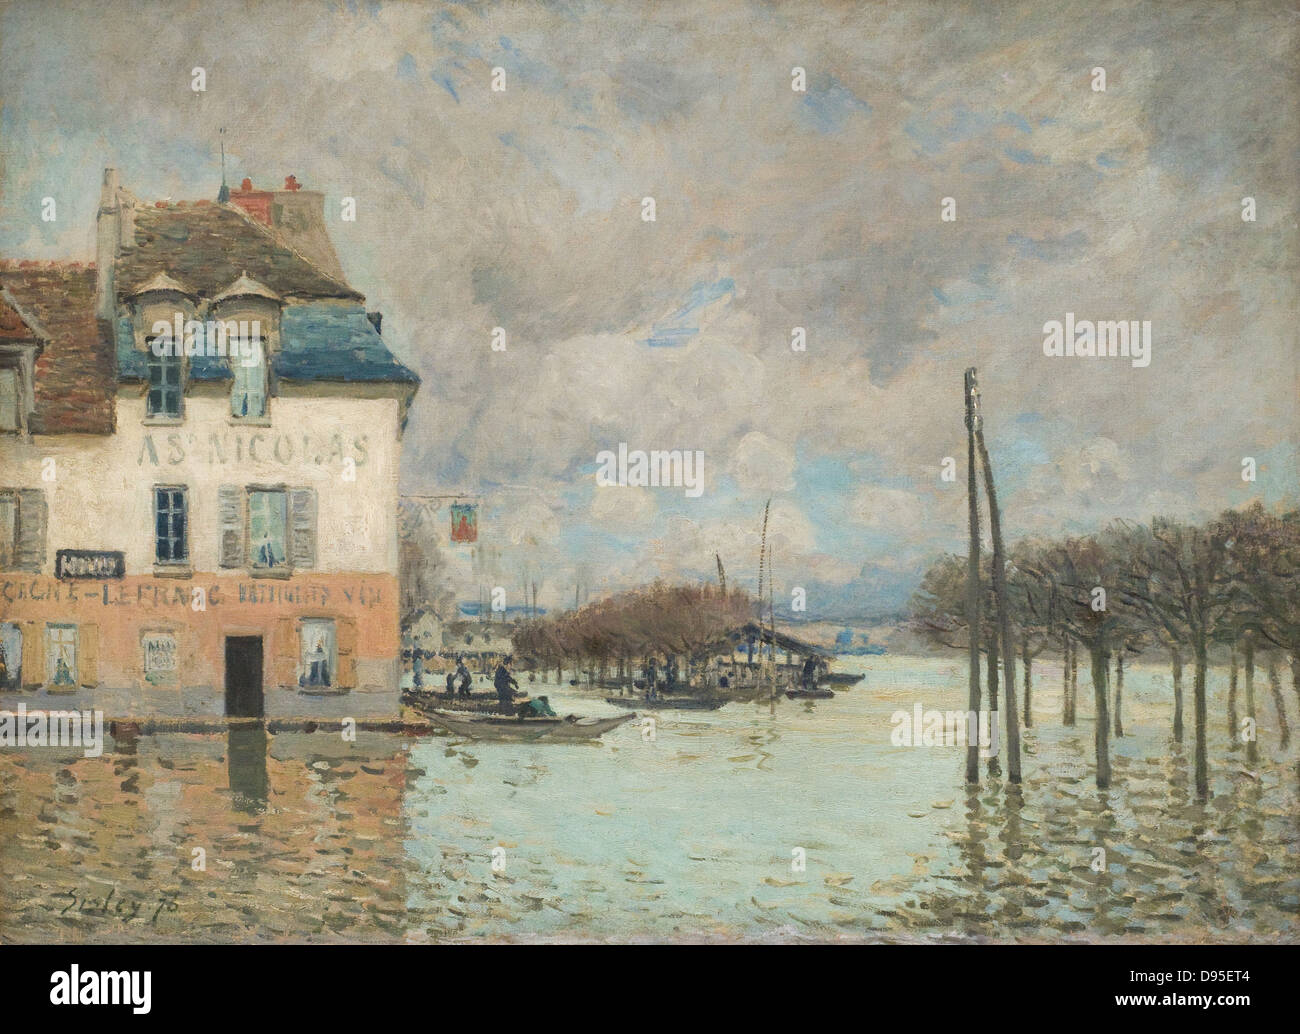 alfred sisley l 39 inondation port marly enchente no port marly 1876 do s culo xix escola. Black Bedroom Furniture Sets. Home Design Ideas